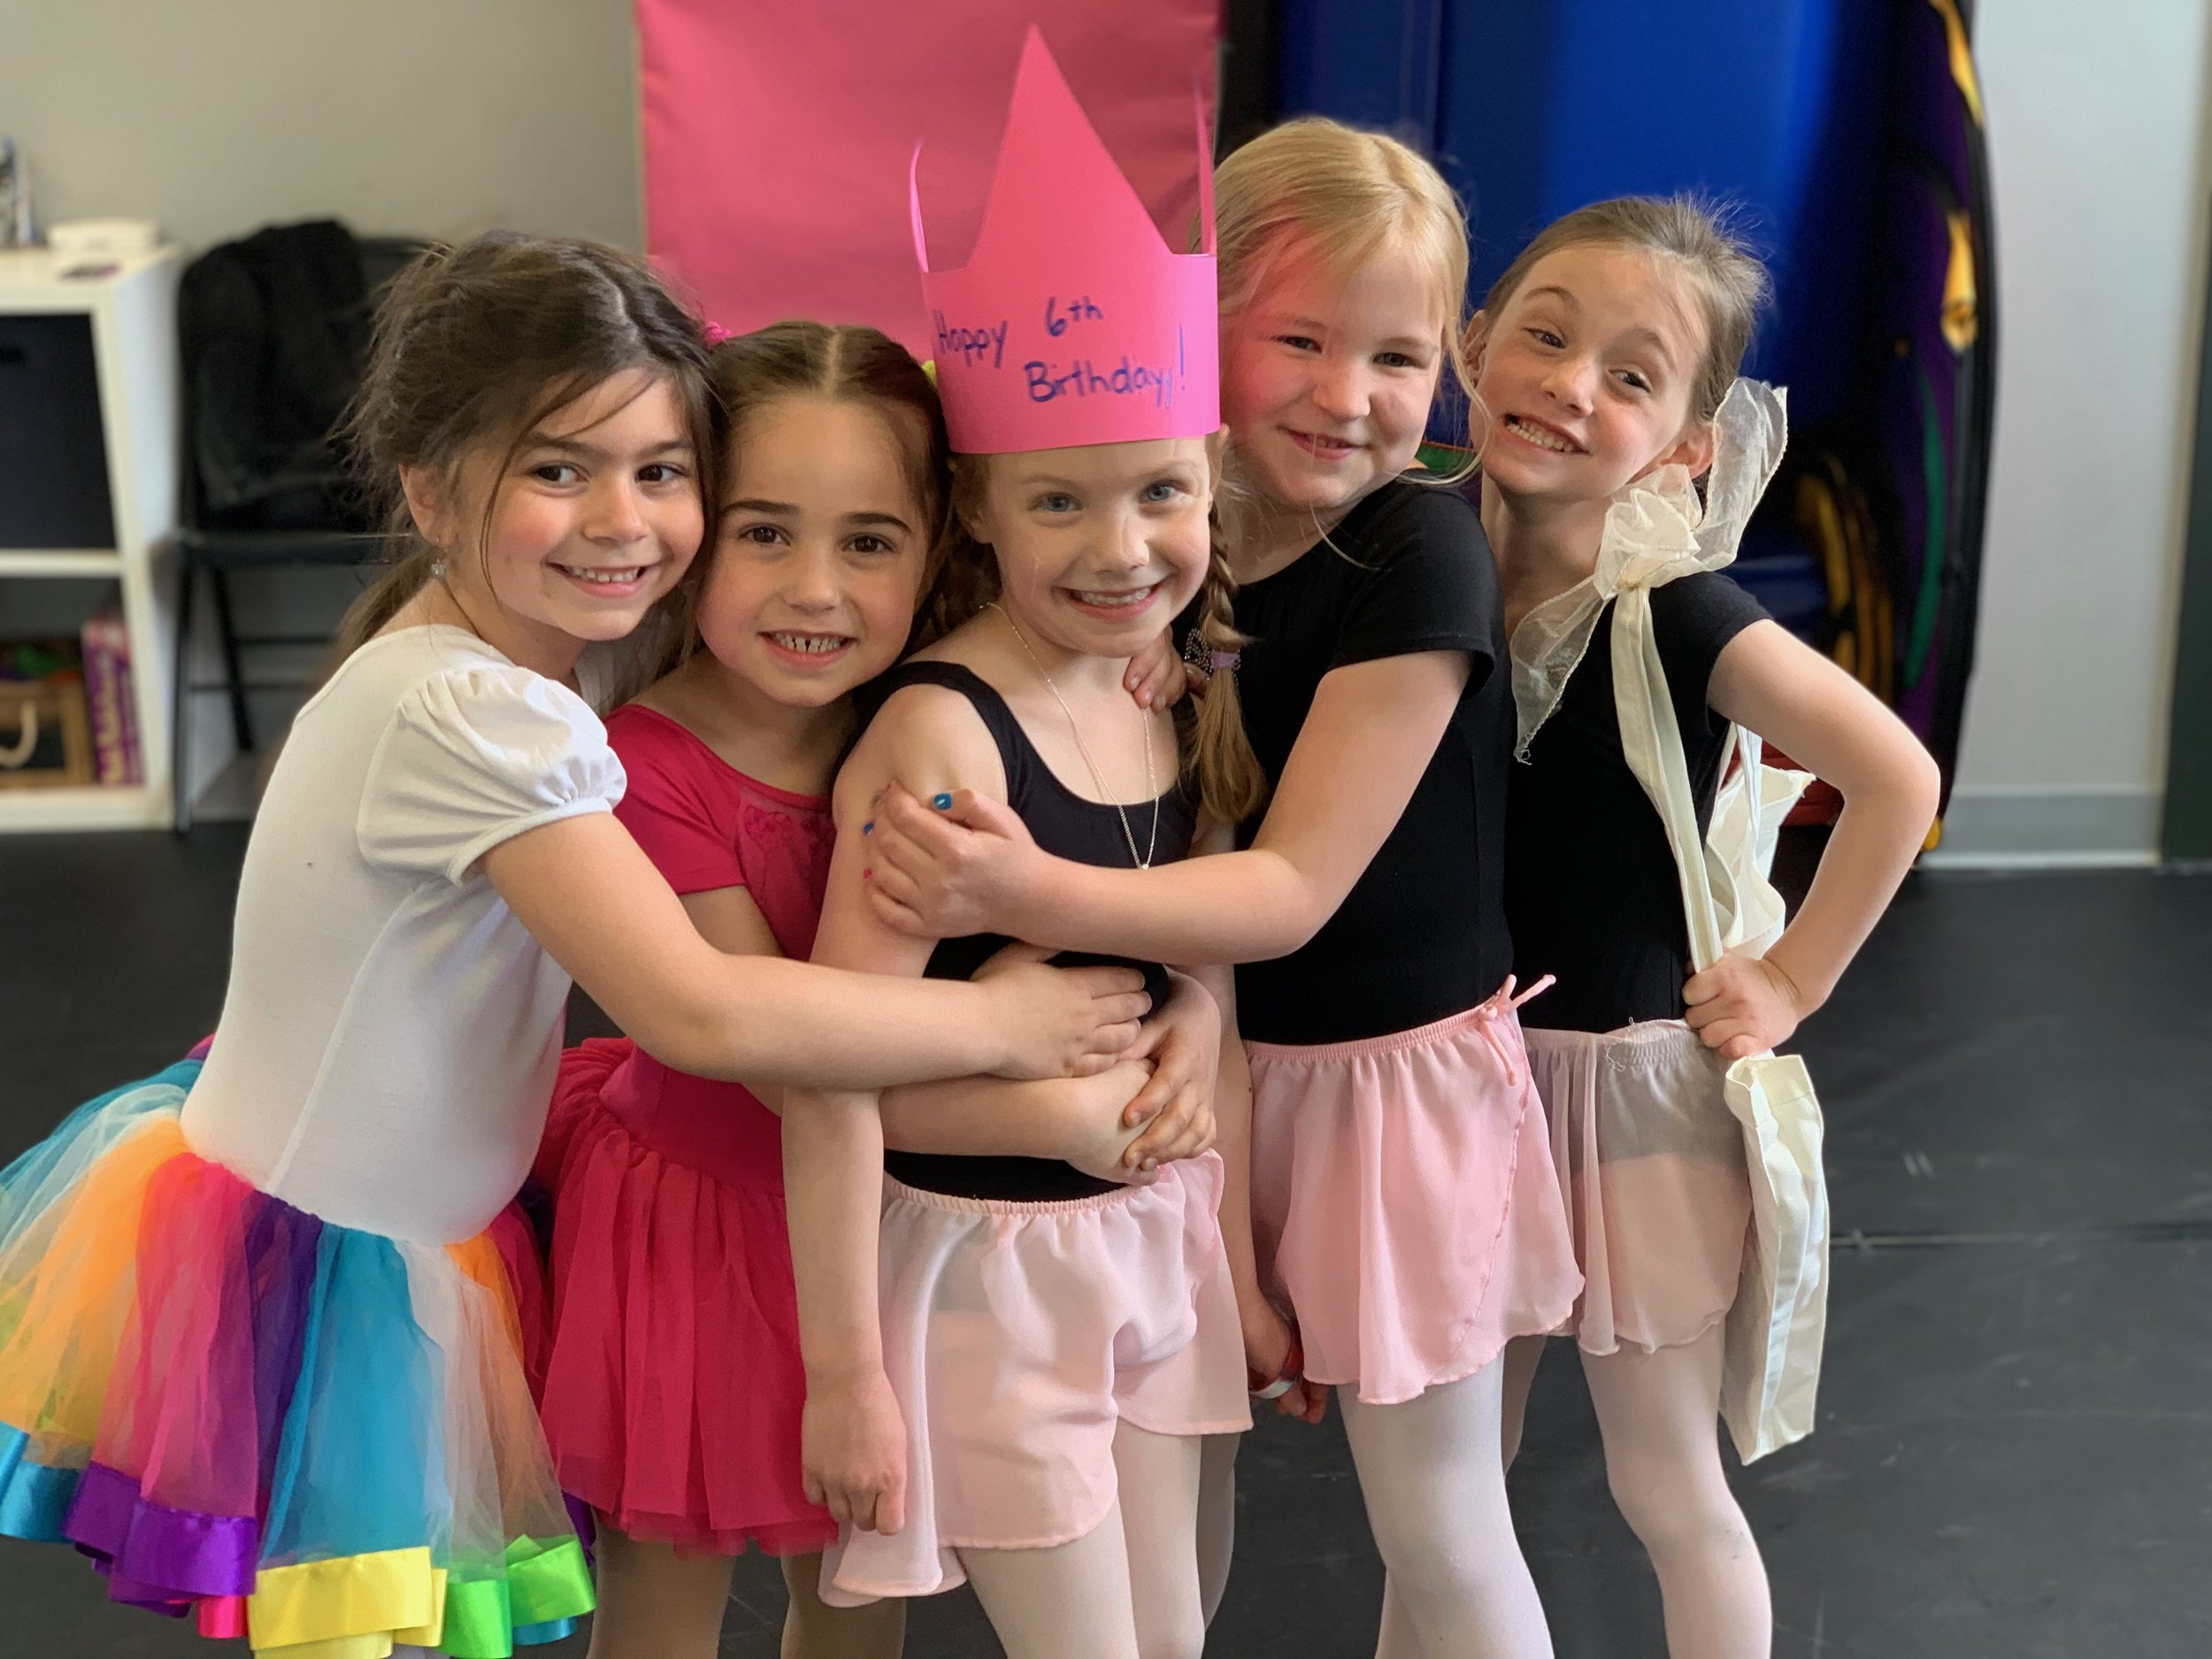 Your party includes: - Studio space for 2 hours60-75 minutes with a qualified MDA instructorRemaining time allotted for cake, gifts, etc.We provide the paper goods, and take care of the clean upOptional arts & crafts fun!